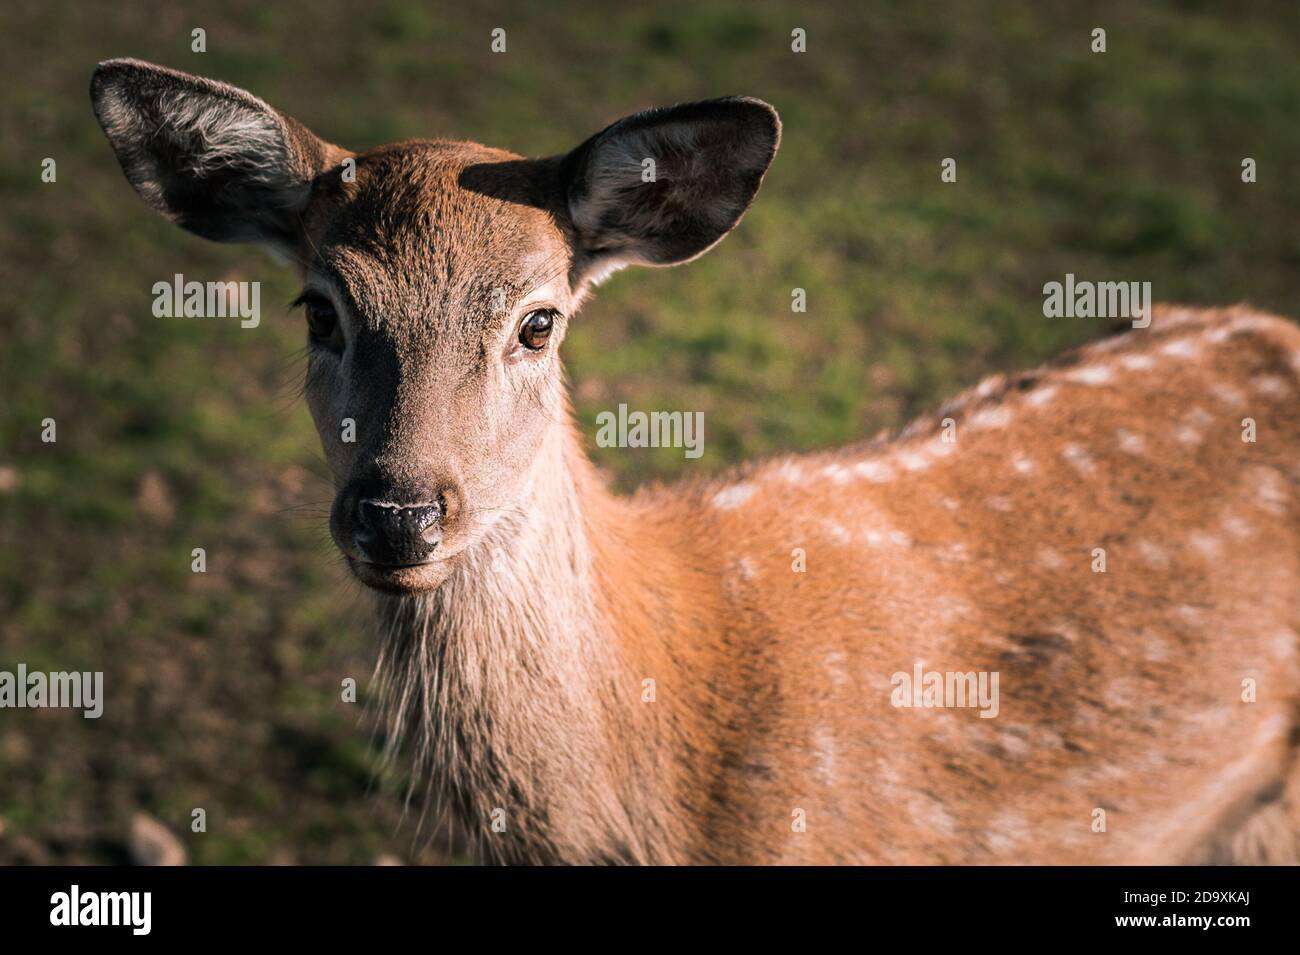 Wild deer nips grass in a green meadow. Nature, beautiful animals live in their habitat.  Stock Photo